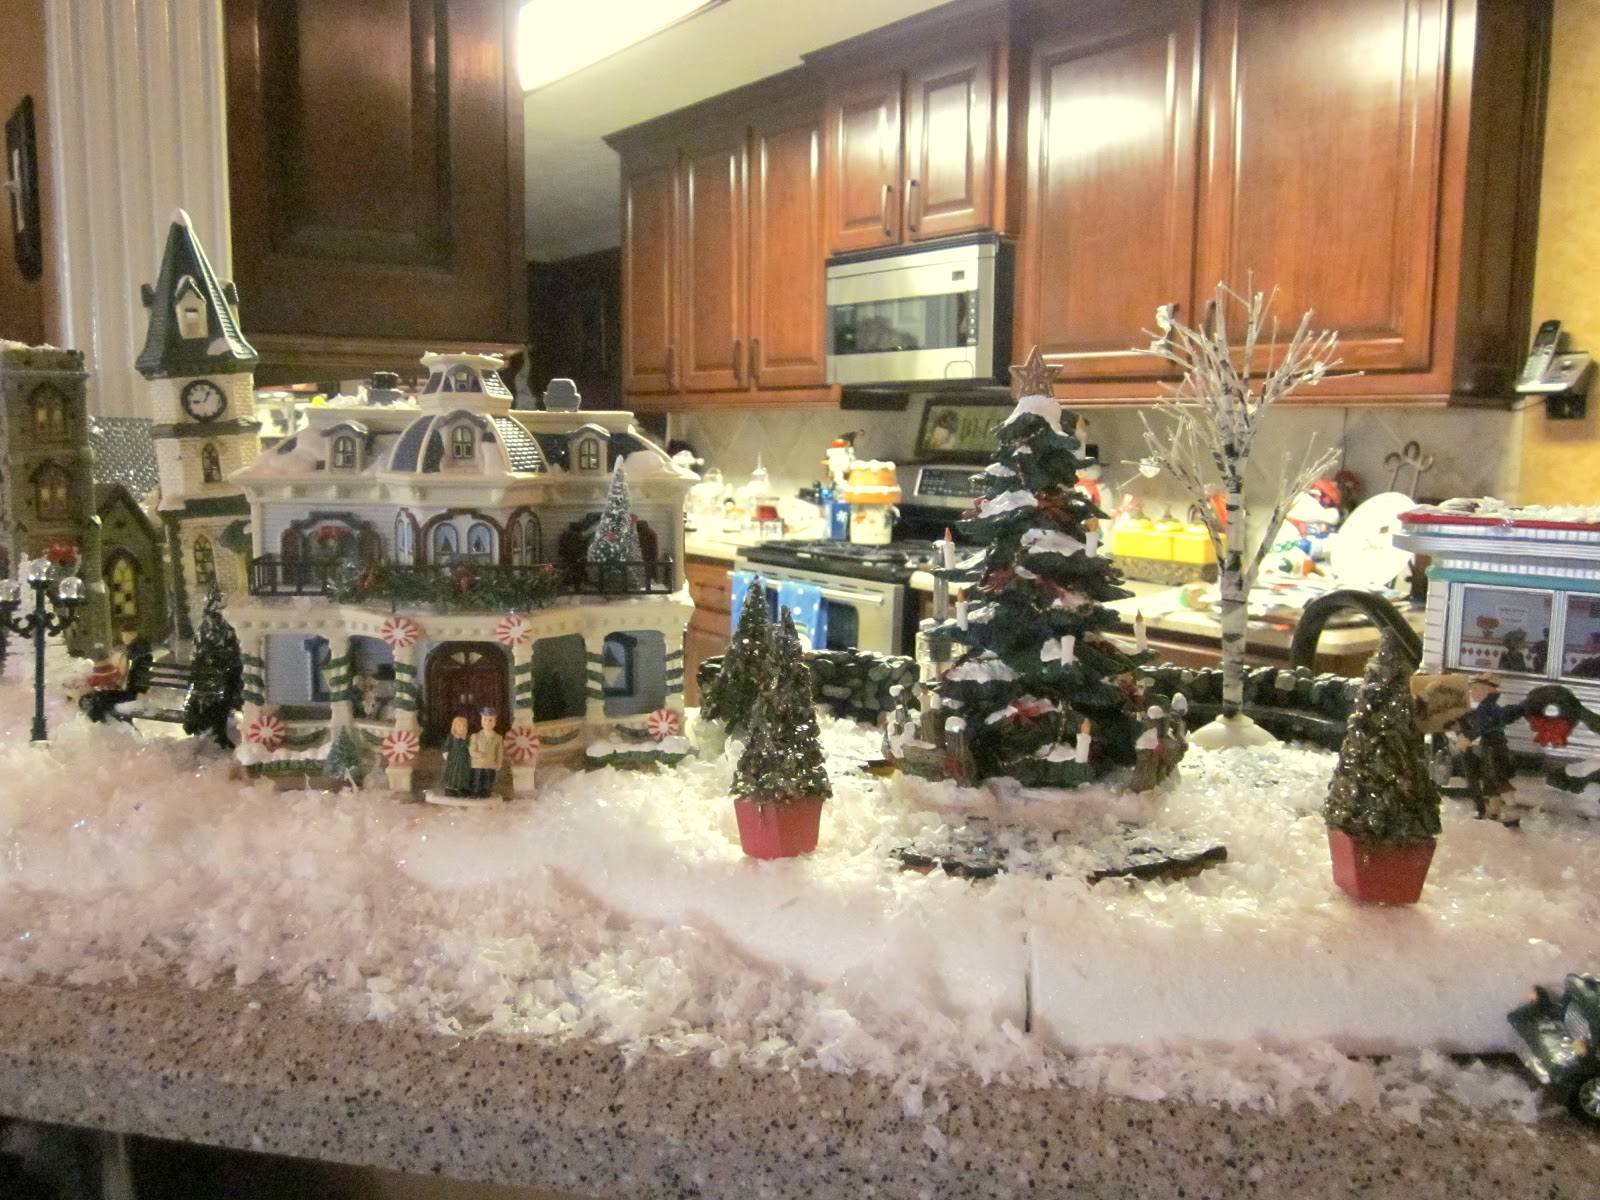 St Nicholas Christmas Village.Life By The Pool It S Just Better Ms D S Christmas Village